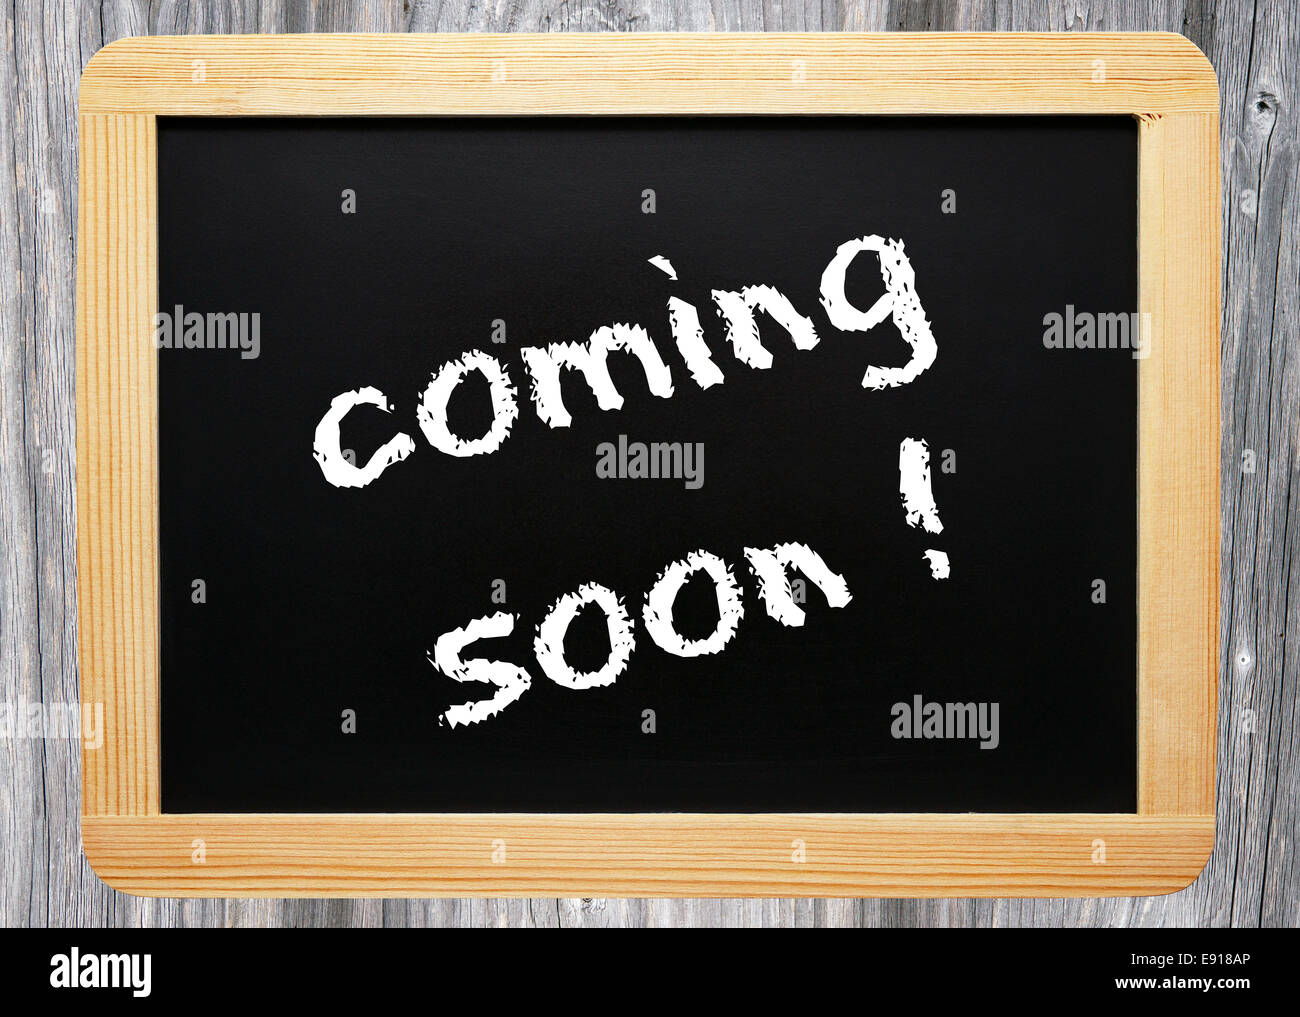 coming soon ! - Business Concept Stock Photo